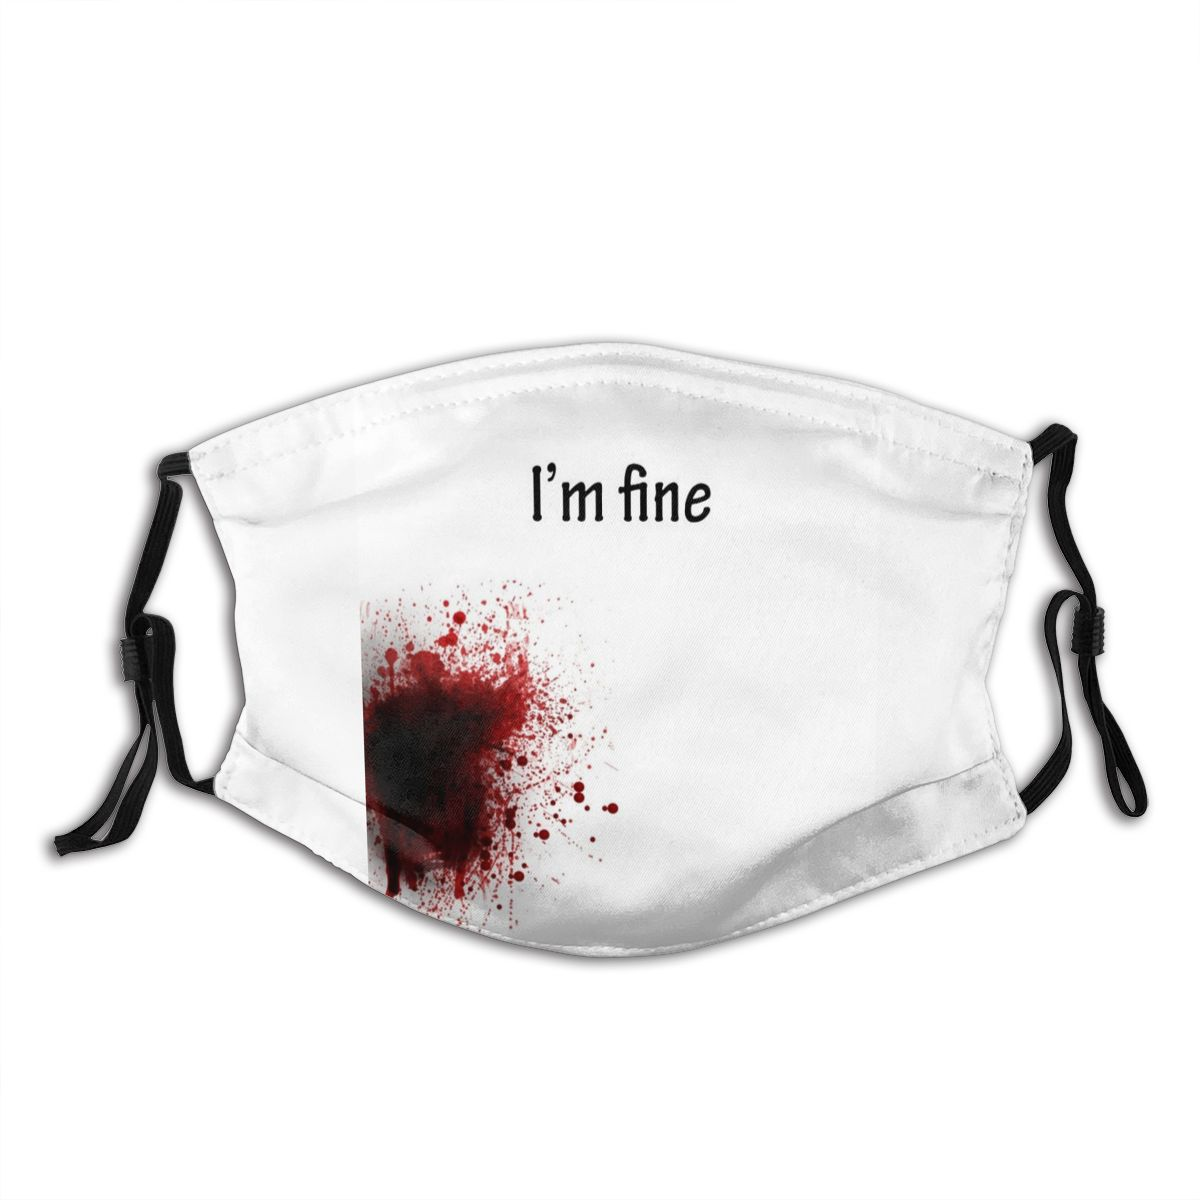 I'm Fine Blooded Reusable Mouth Face Mask Anti Bacterial Dust Mask With Filters Protection Mask Respirator Mouth Muffle